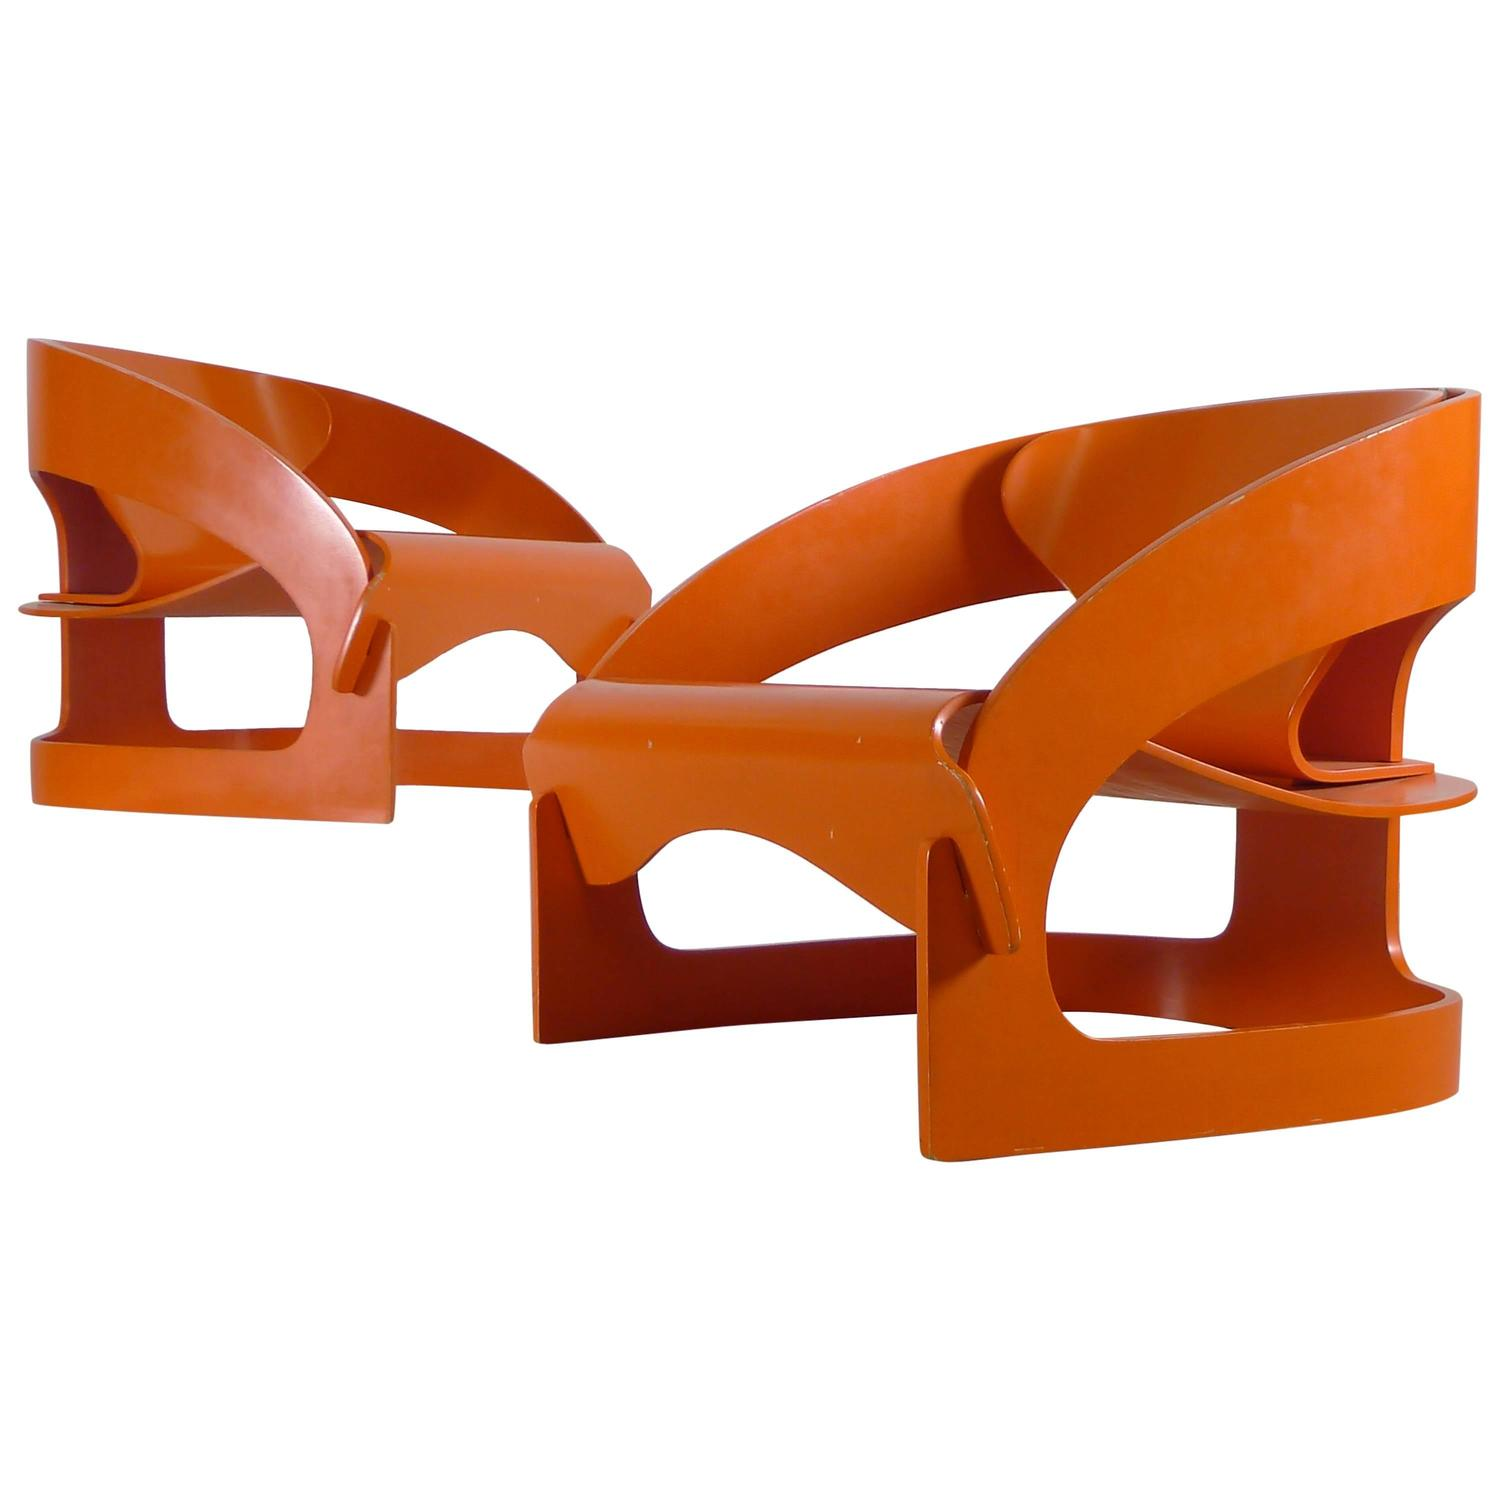 4801 Chairs by Joe Colombo for Kartell , Italy 1963.jpg